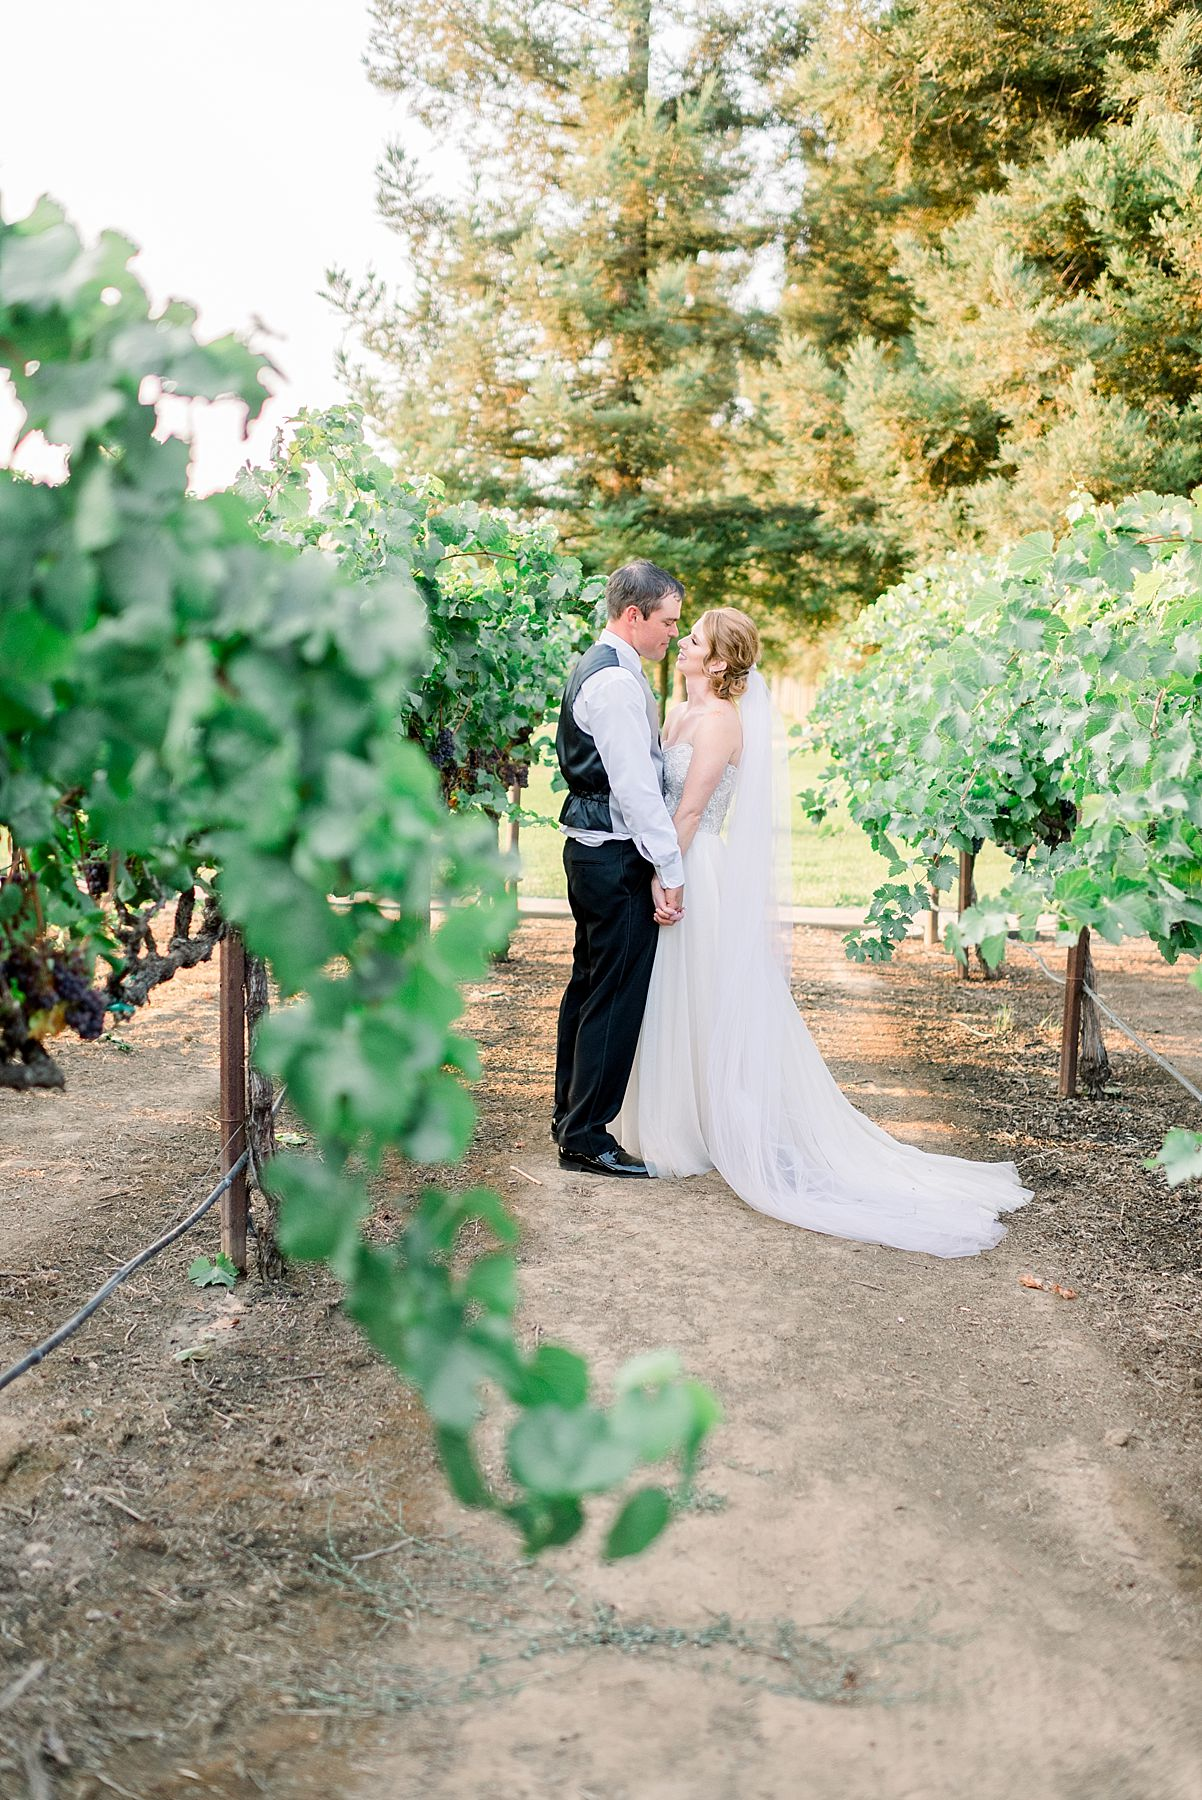 Wine and Roses Wedding - Wine and Roses Lodi Wedding Photographer - Sacramento Film Wedding Photographer - Ashley Baumgartner - Sacramento Luxury Wedding Photographer_0049.jpg